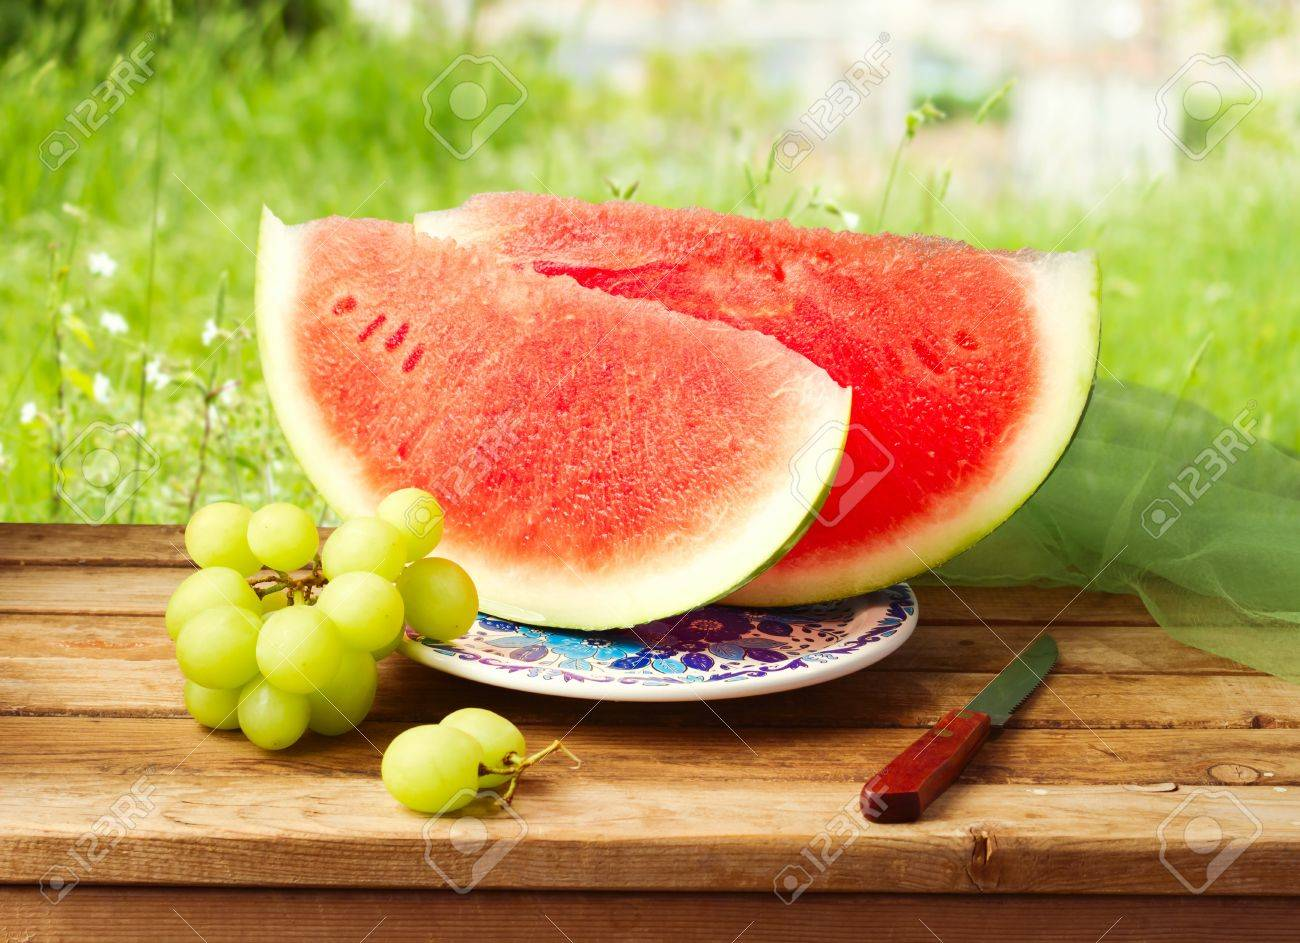 Watermelon and grapes on wooden table over grass bokeh background. Stock Photo - 21184932